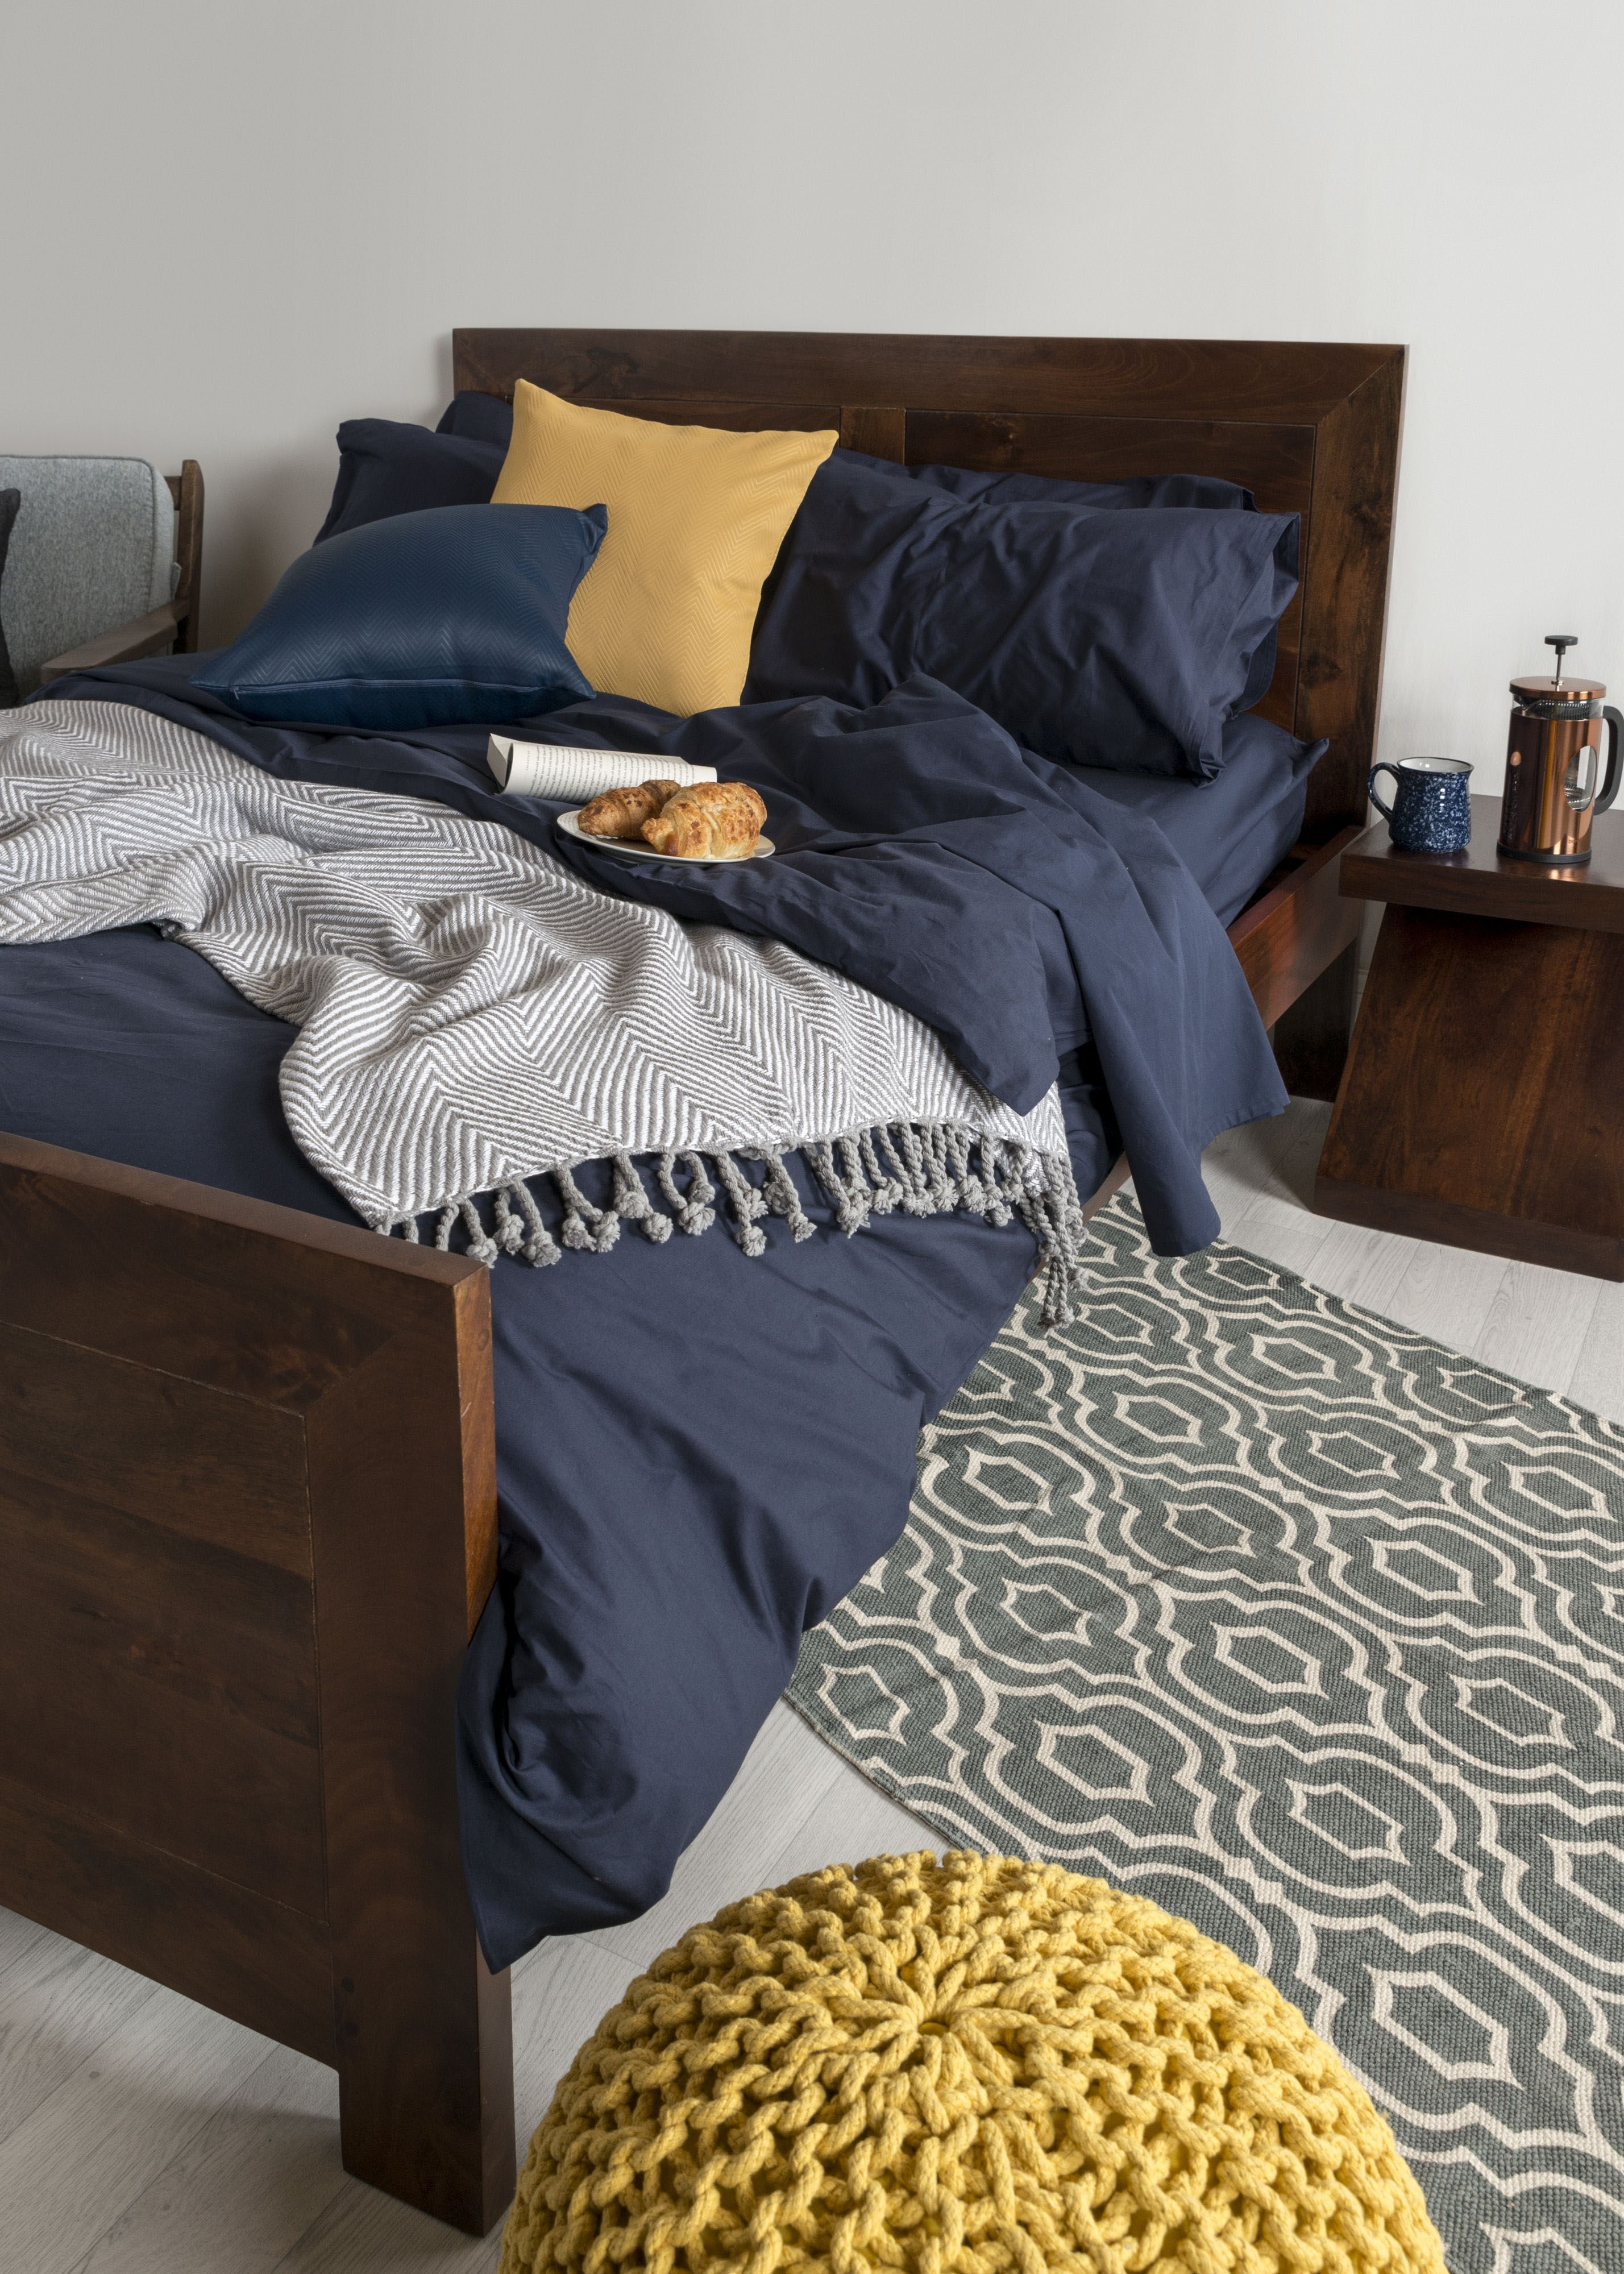 Blue Bedroom Ideas We Re Putting It Around Blue May Be The Ultimate Bedroom Color It S Subtle Witho Yellow Bedroom Decor Blue Bedroom Decor Yellow Bedroom